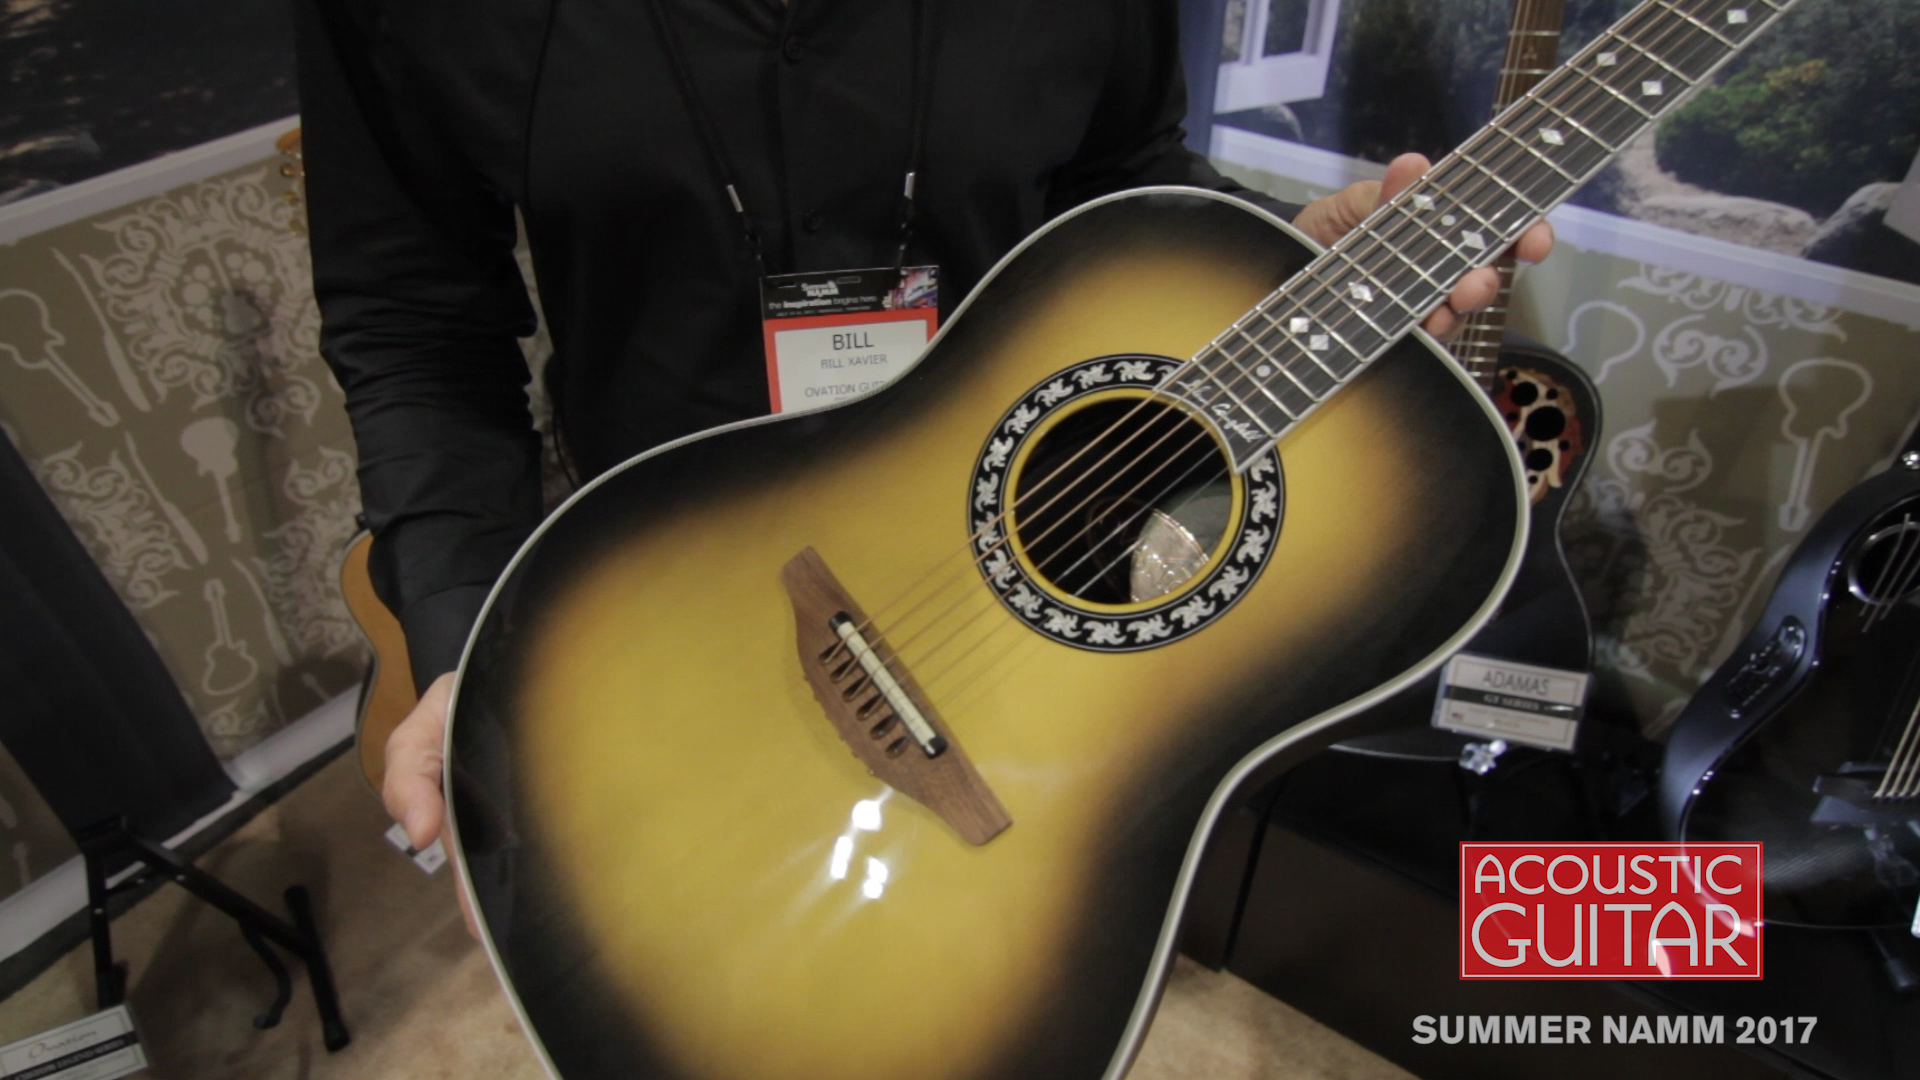 Summer NAMM 2017: Ovation Introduces the Glen Campbell Signature